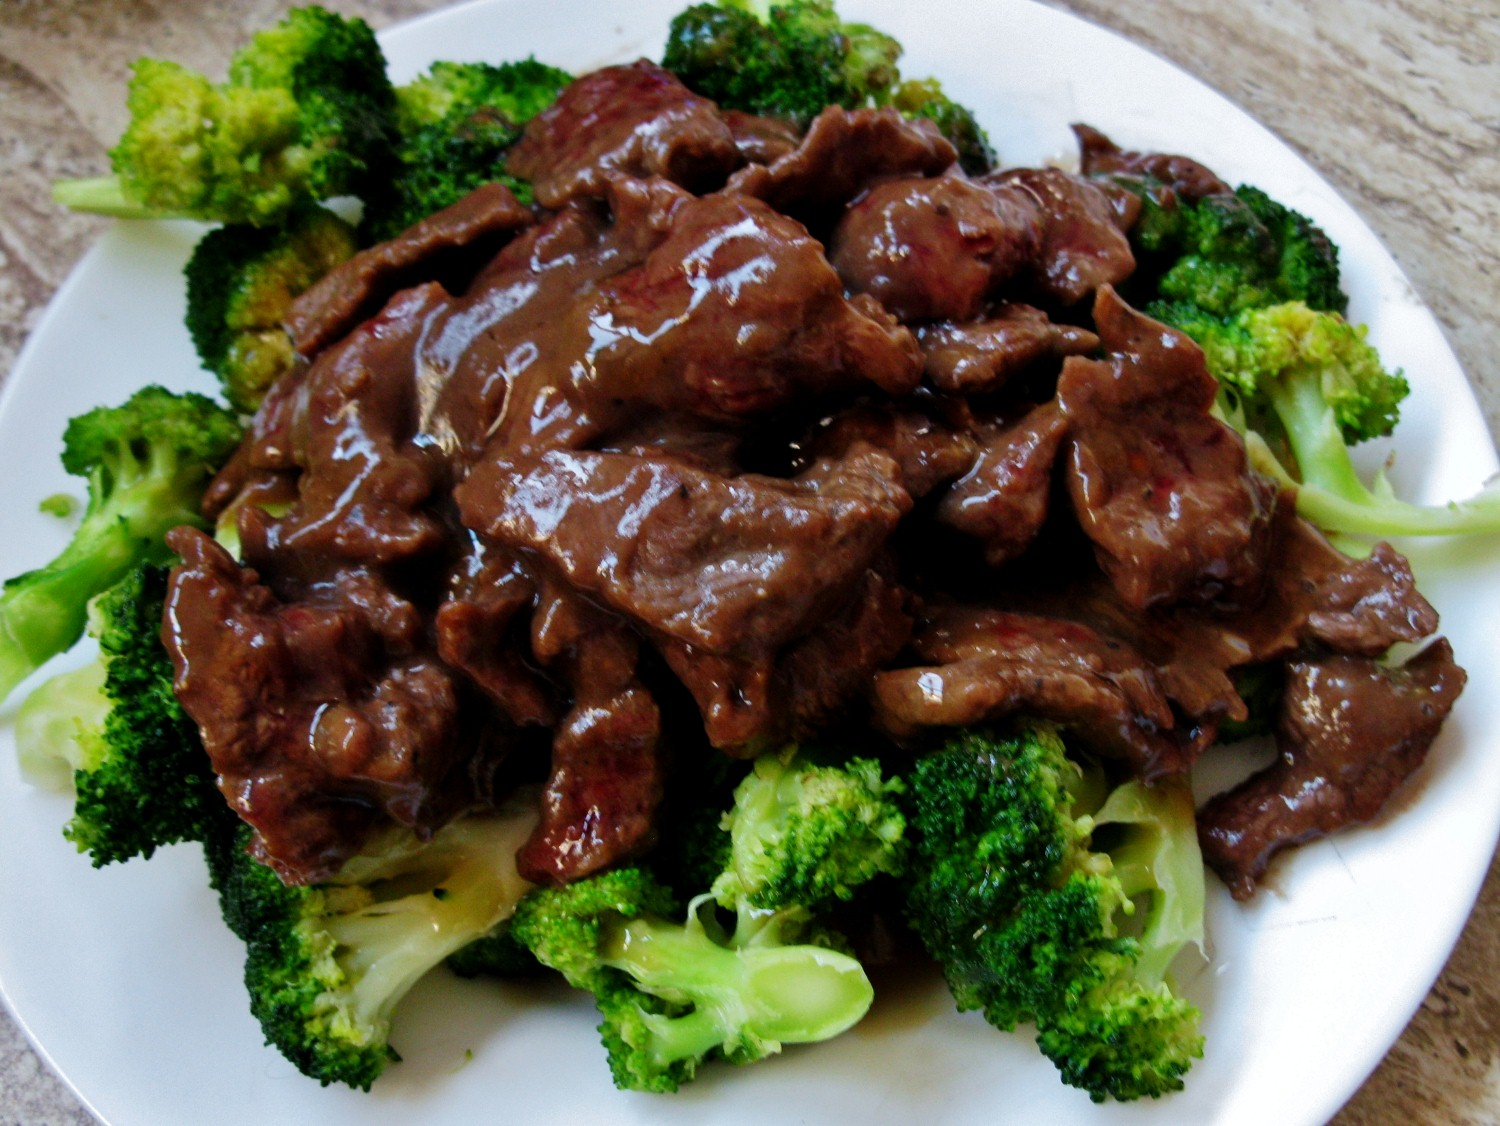 ... lugonia ave redlands ca 2 sweet pungent shrimp kung pao broccoli beef